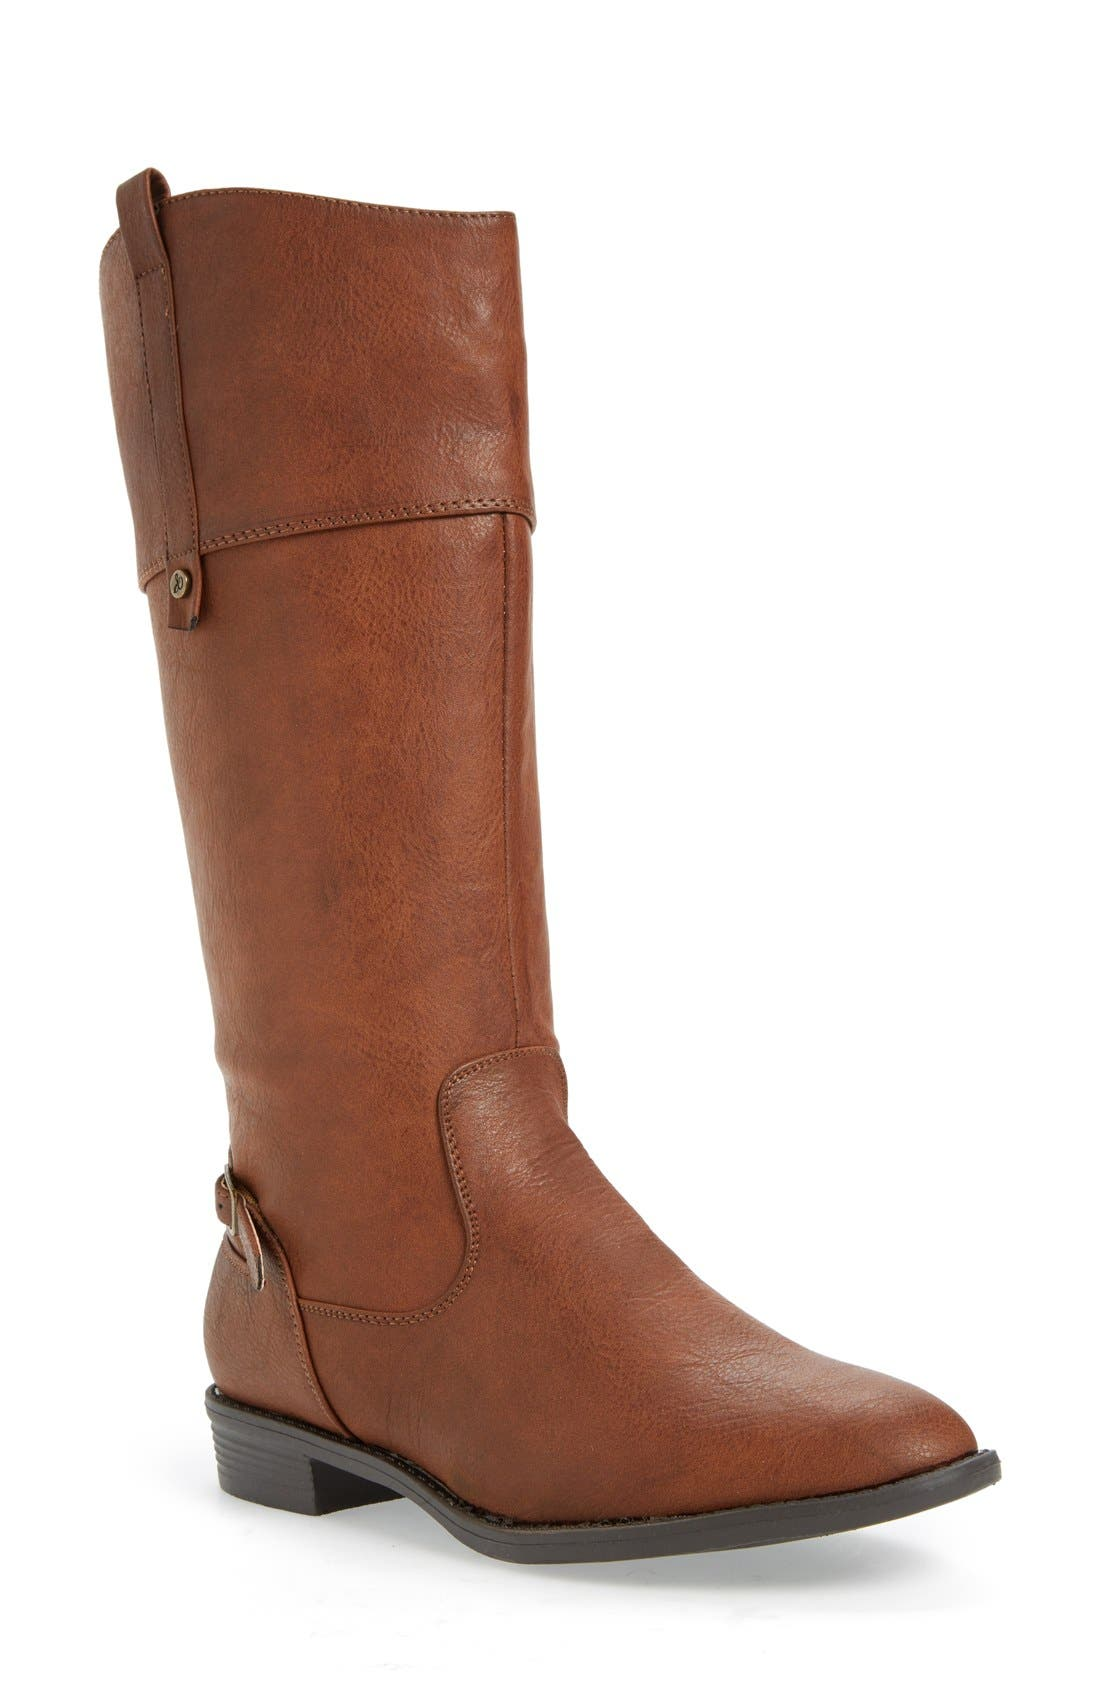 Alternate Image 1 Selected - Sam Edelman 'Pia' Riding Boot (Toddler, Little Kid & Big Kid)